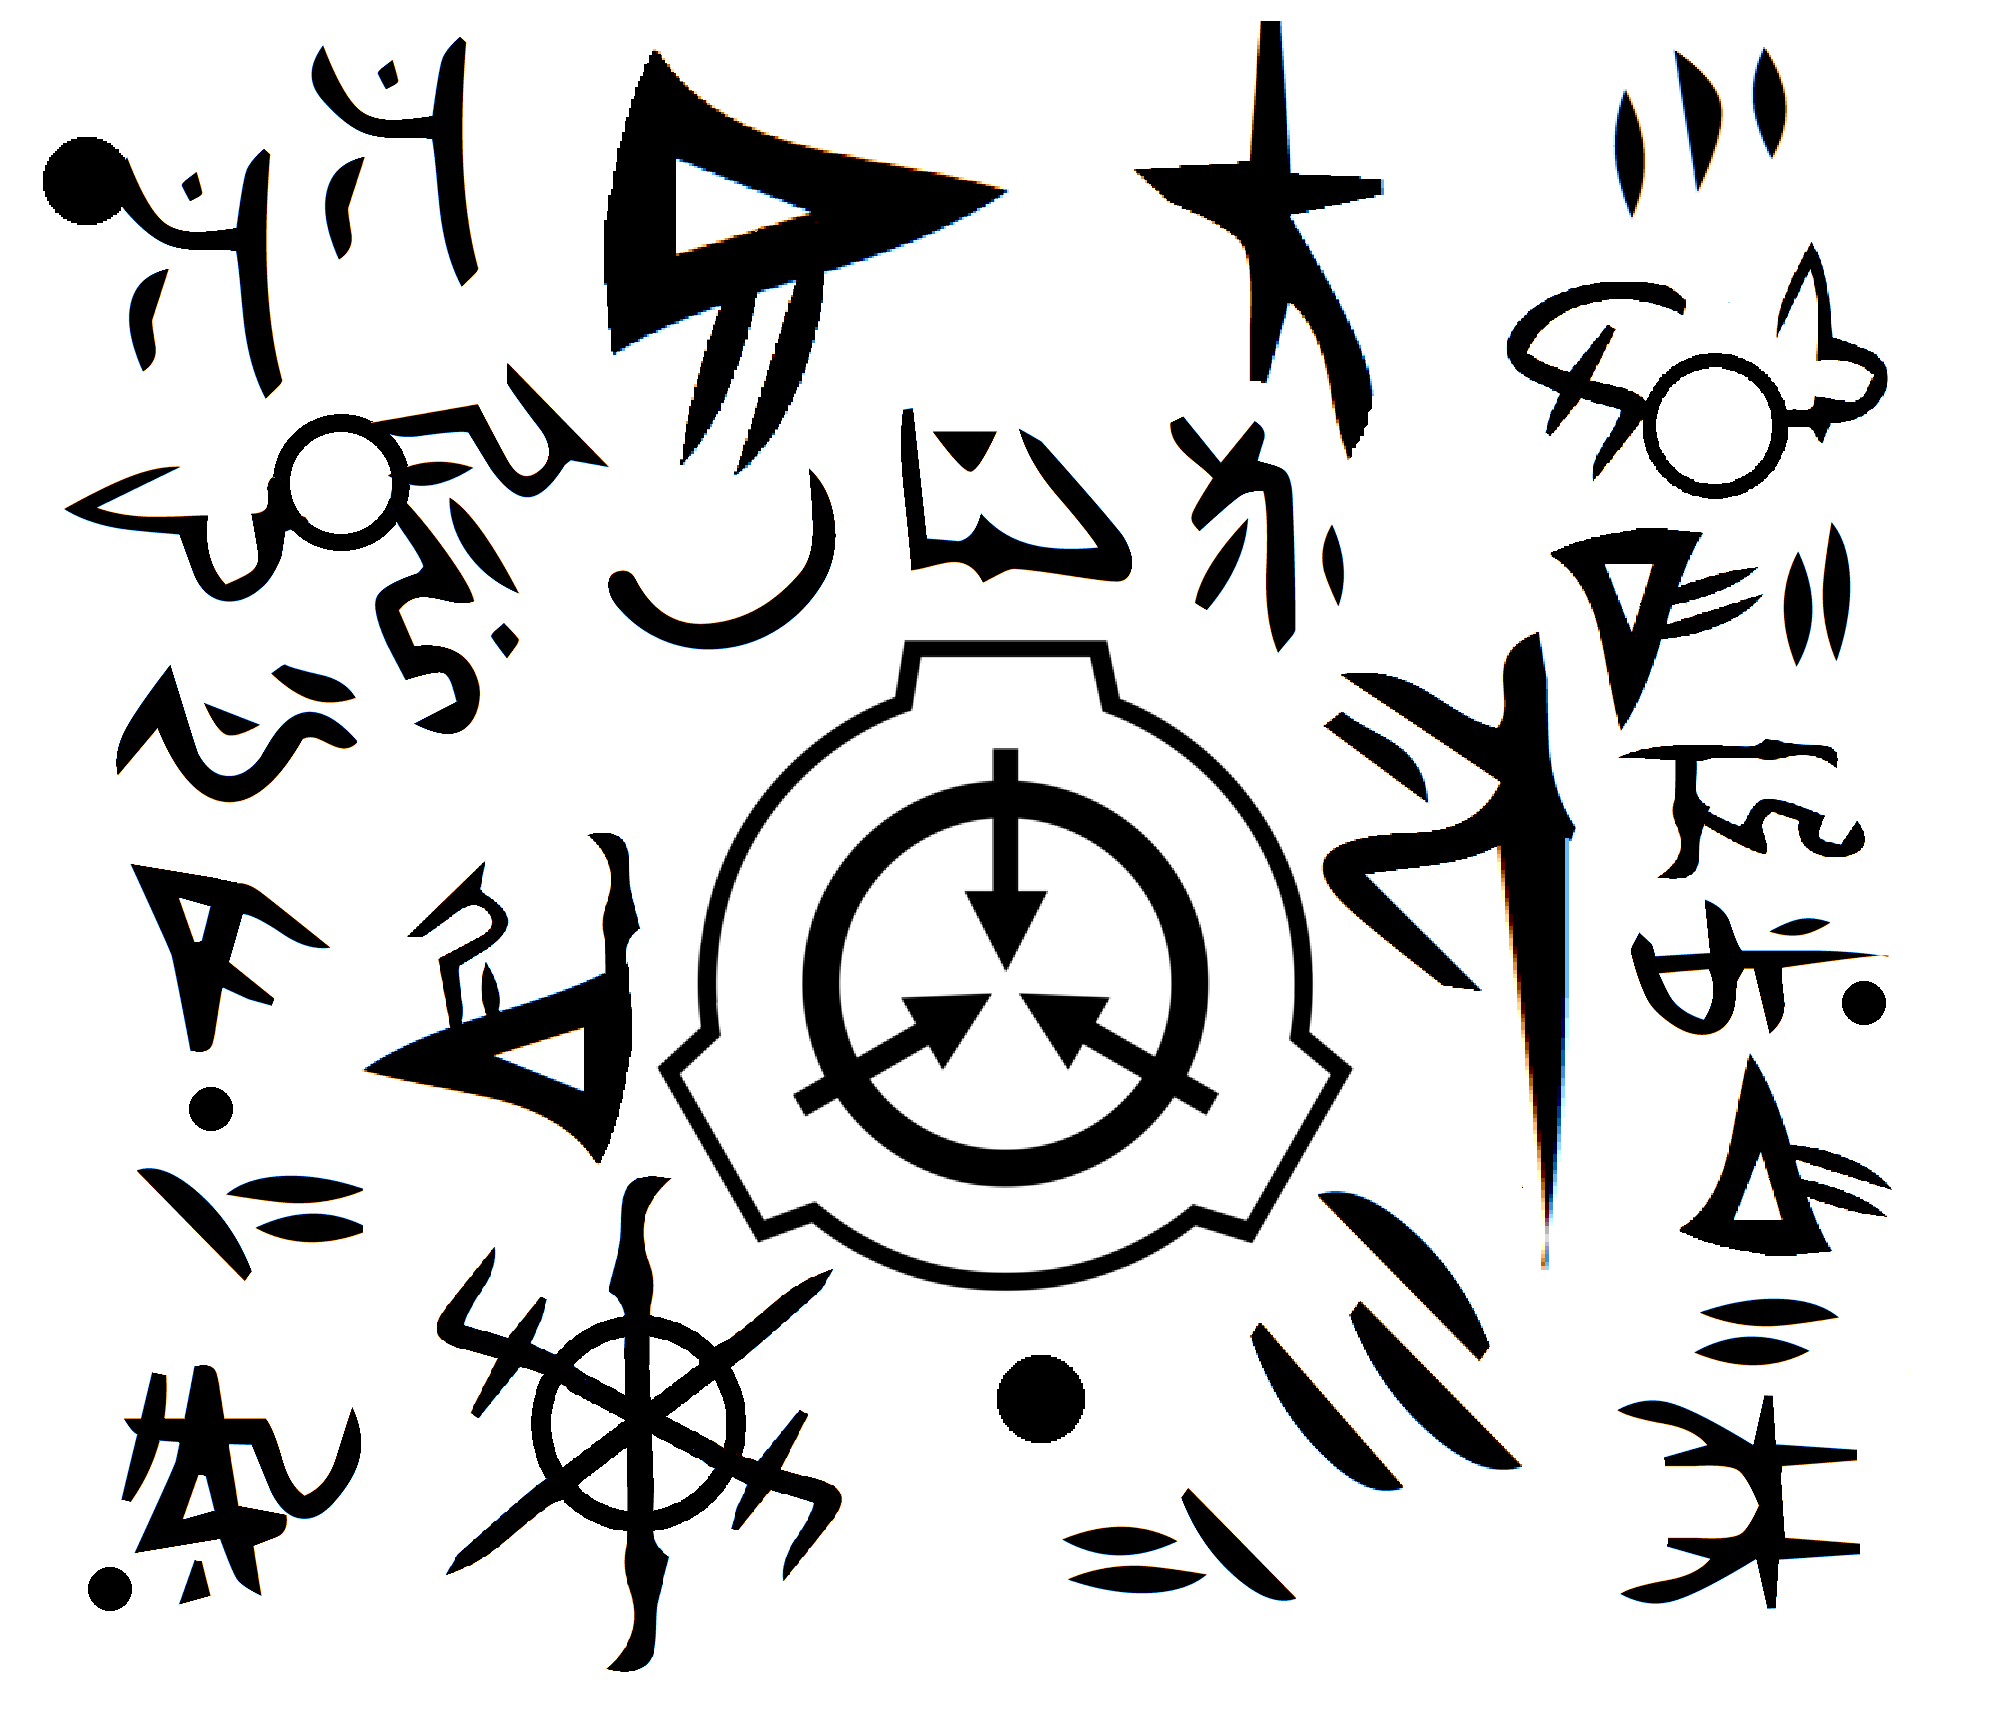 Glyph3PetrogradFixed.png